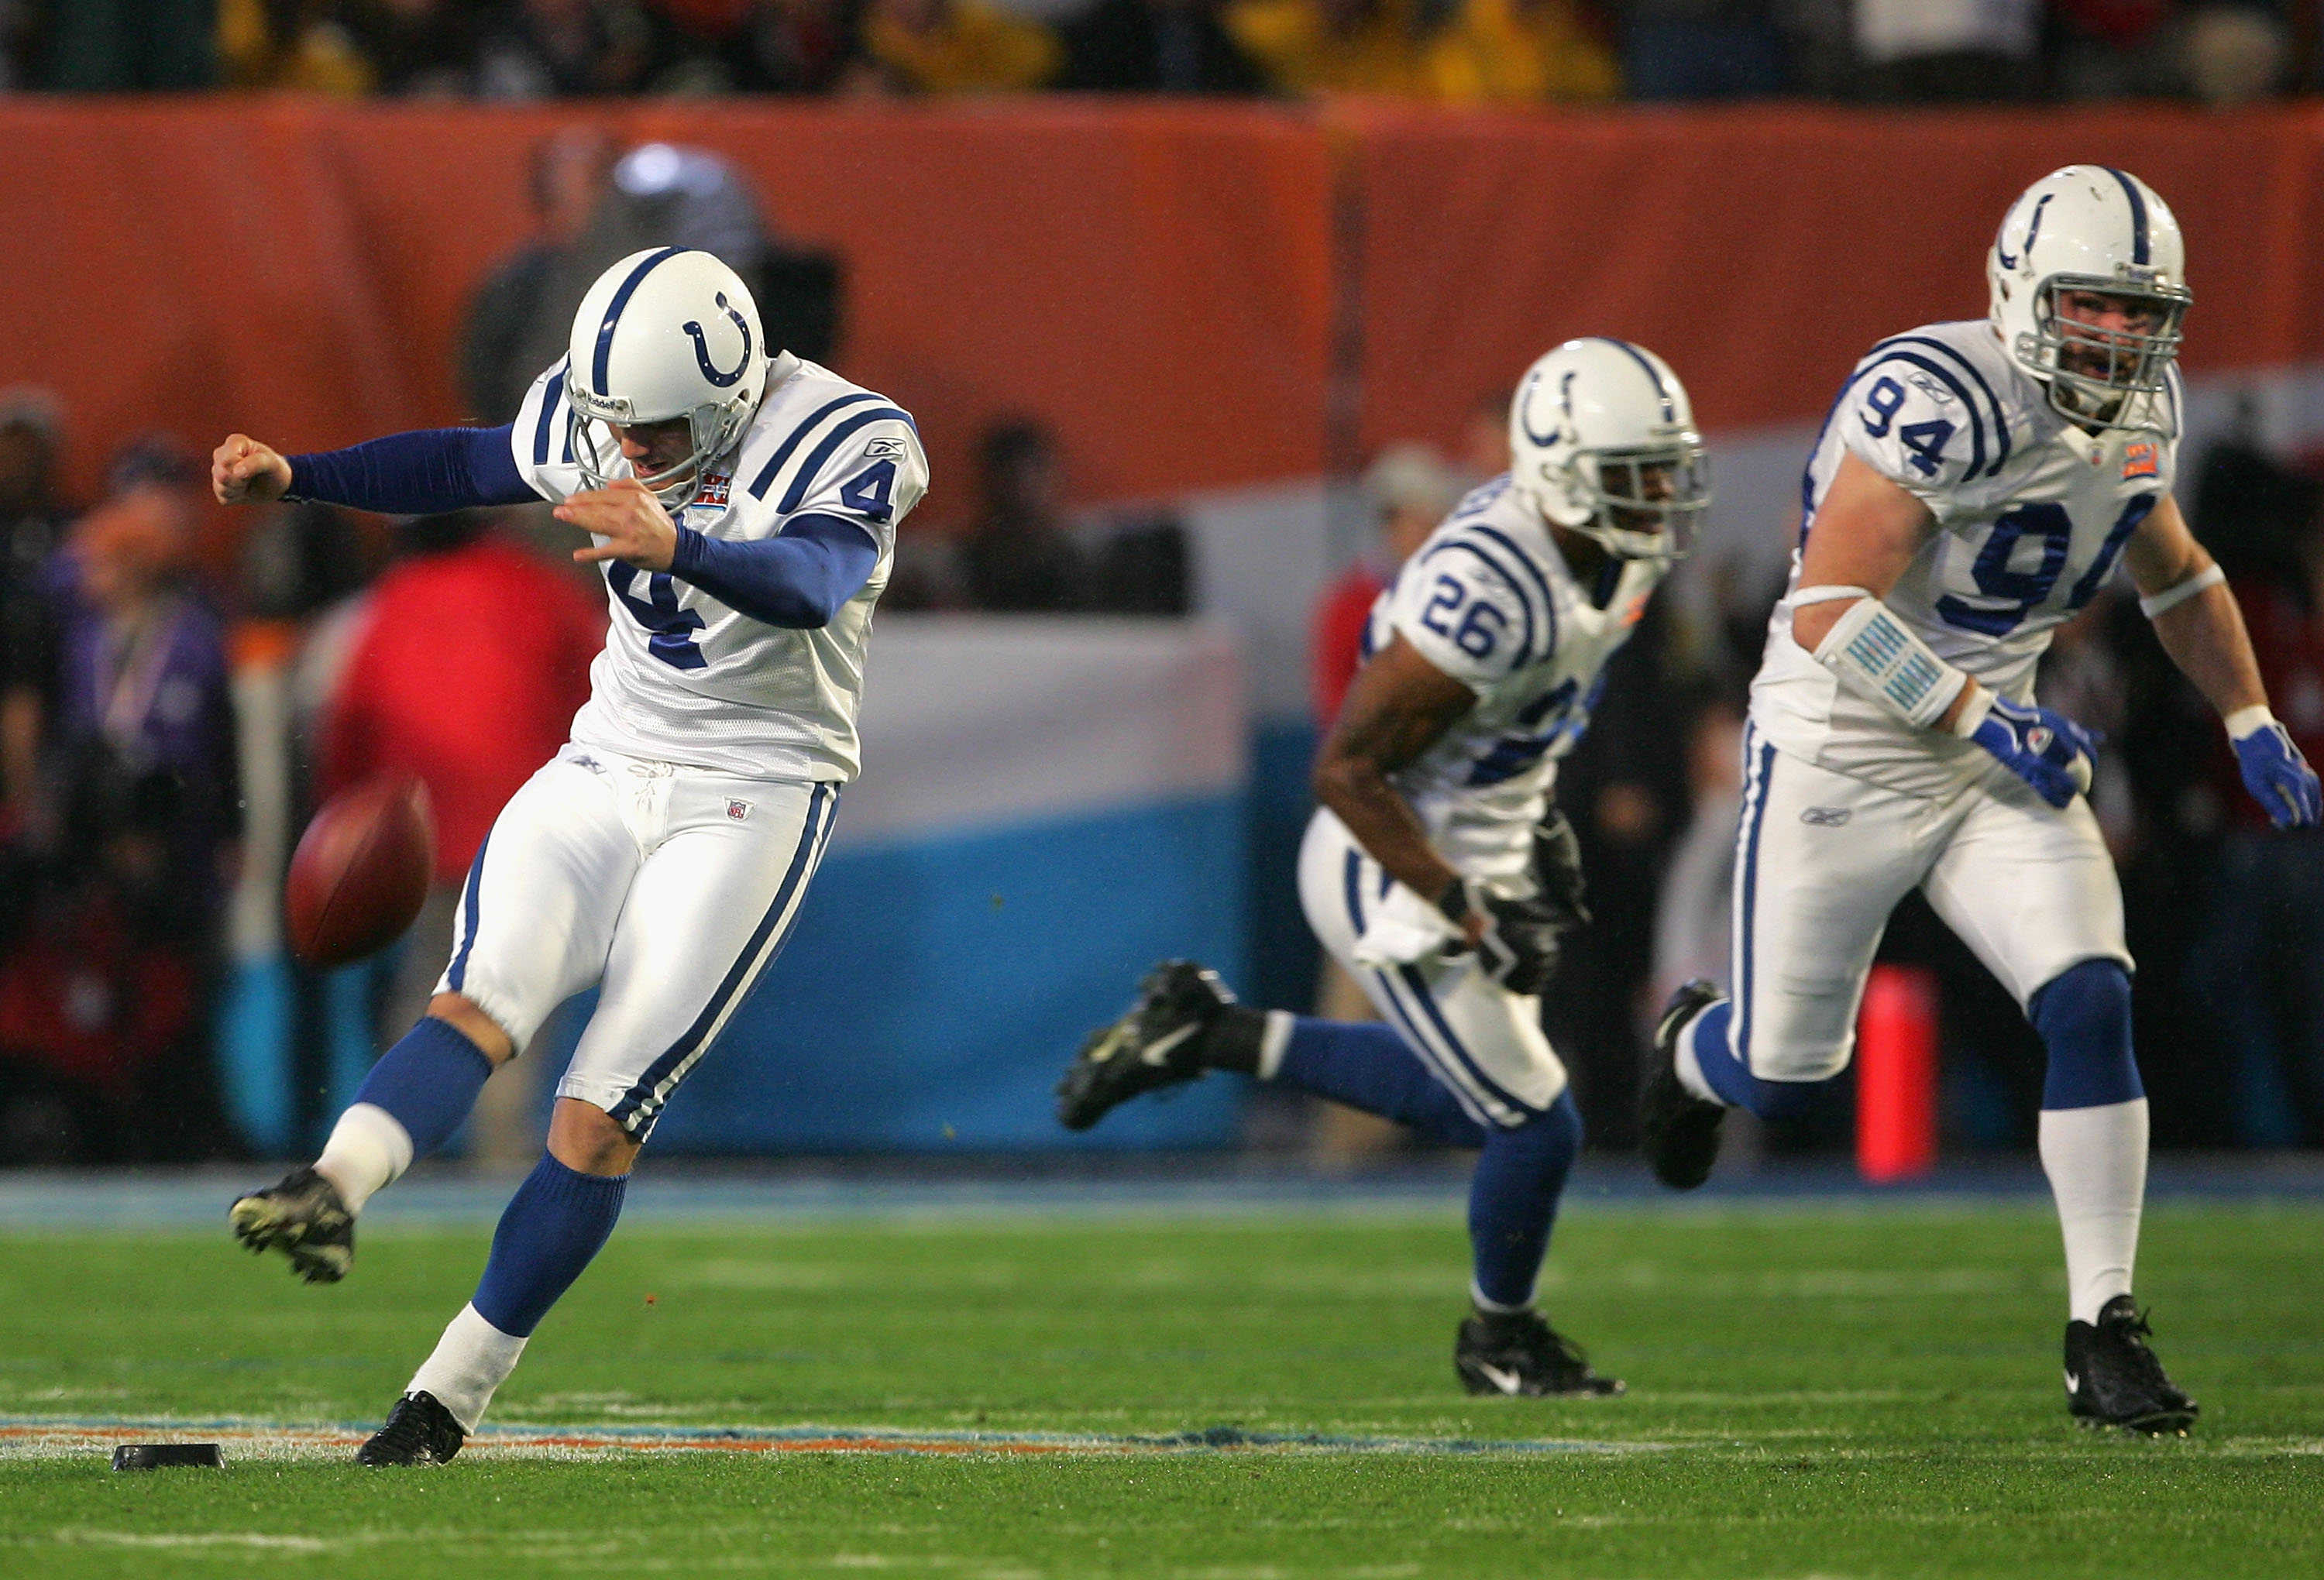 MIAMI GARDENS, FL - FEBRUARY 04:  Kicker Adam Vinatieri #4 of the Indianapolis Colts kicks the opening kickoff against the Chicago Bears during Super Bowl XLI on February 4, 2007 at Dolphin Stadium in Miami Gardens, Florida.  (Photo by Doug Pensinger/Gett